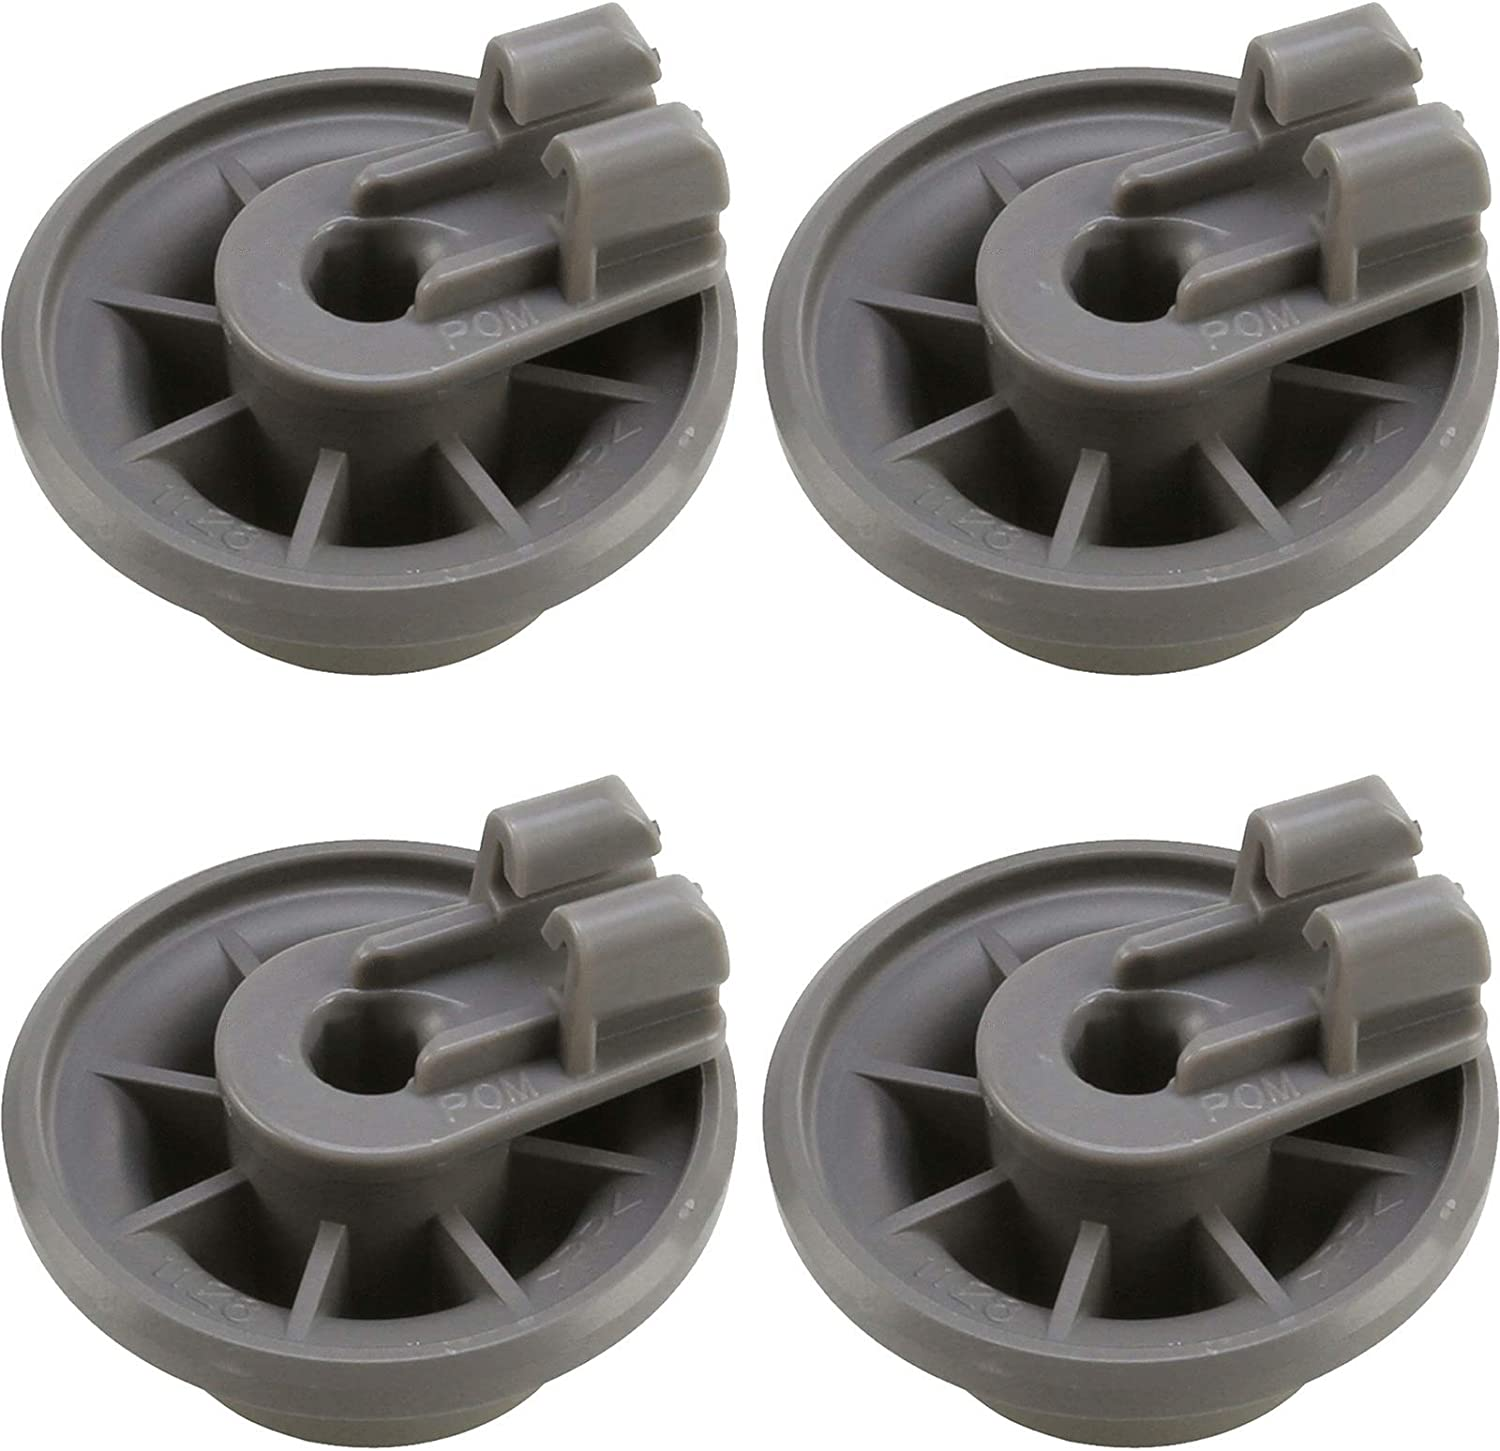 00611475 Dishwasher Lower Dishrack Wheel Assembly For Bosch Dishwasher-(4 Pack)